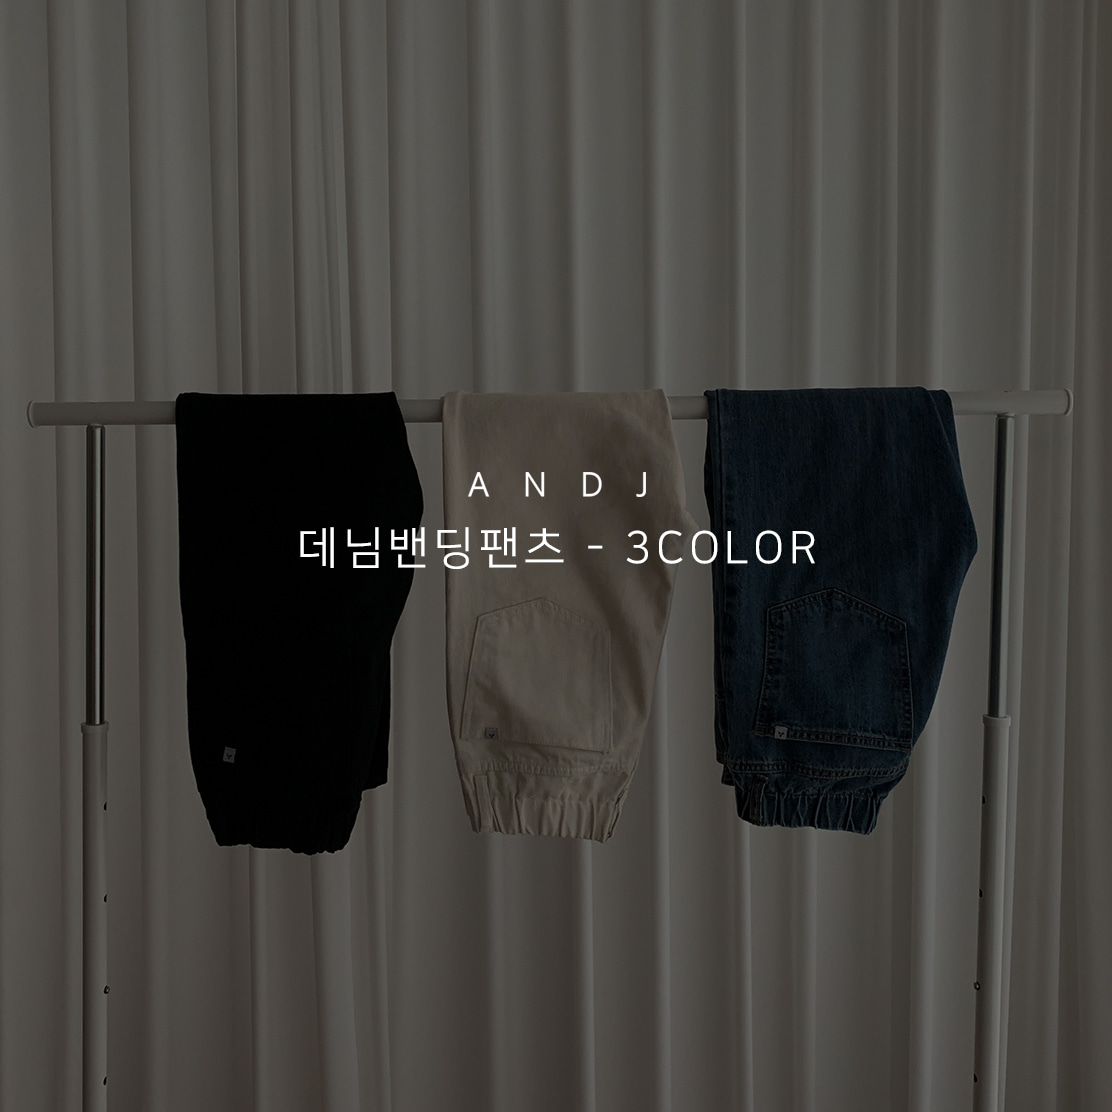 데님 밴딩팬츠(Denim Banding Pants) *OPEN